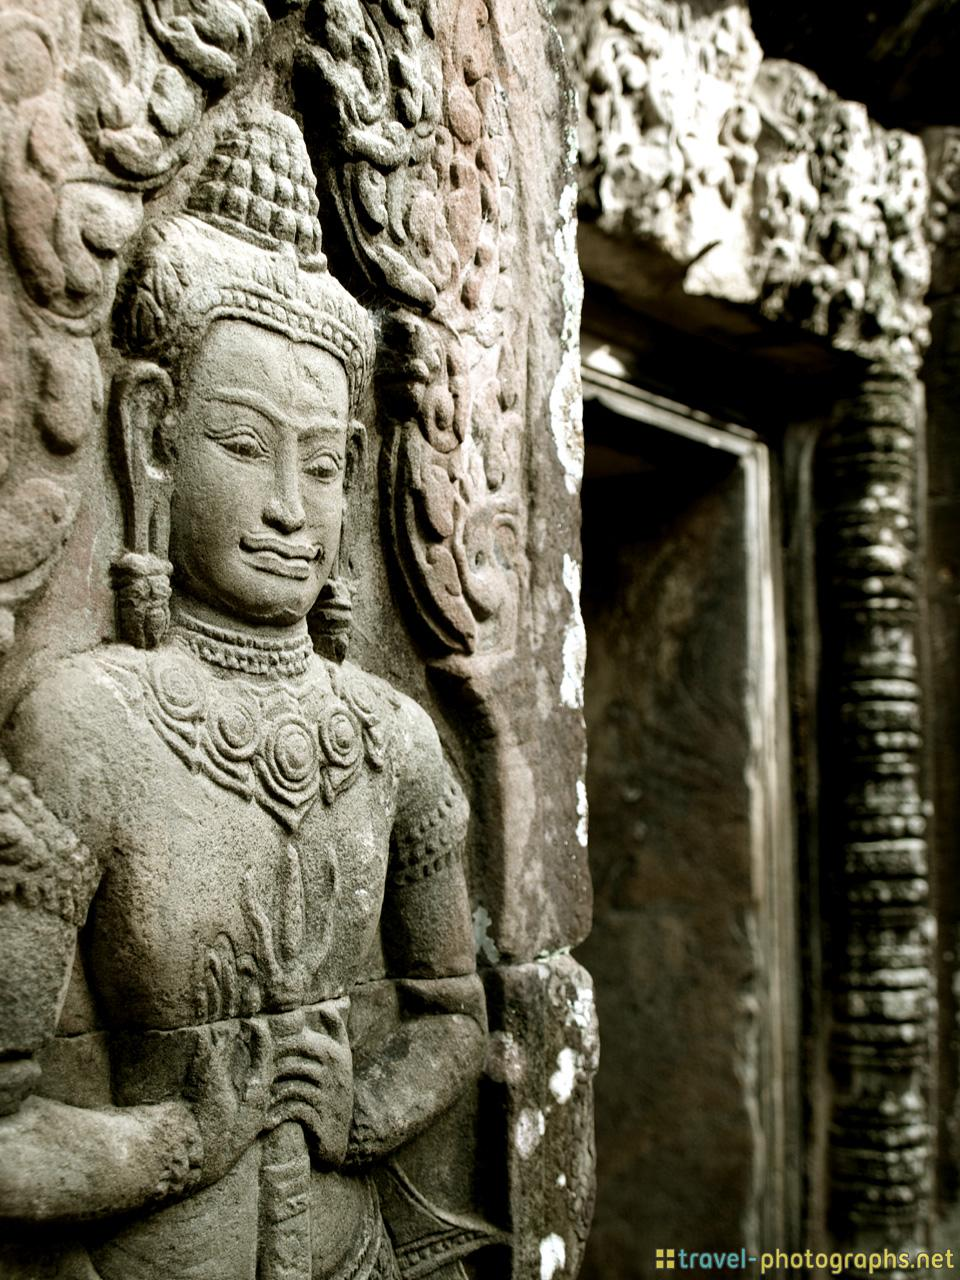 Angkor wat photos awesome images of cambodia s highlight